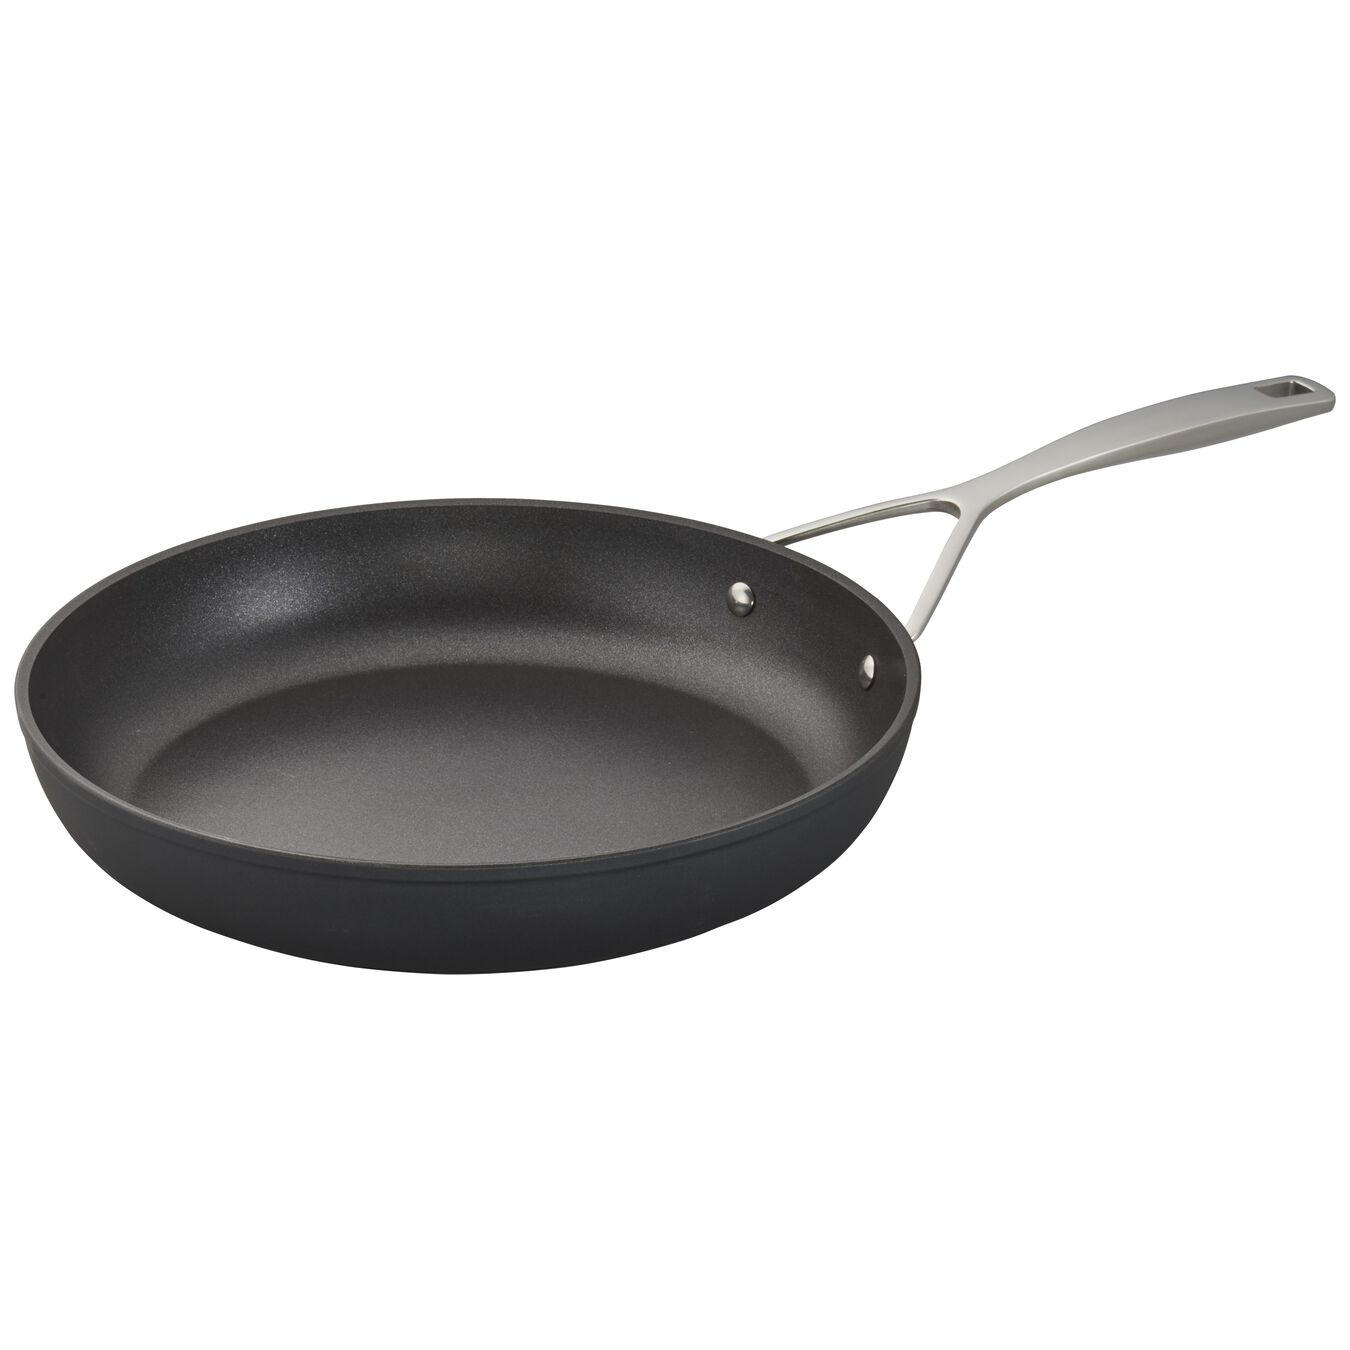 12-inch Aluminum Nonstick Fry Pan,,large 4